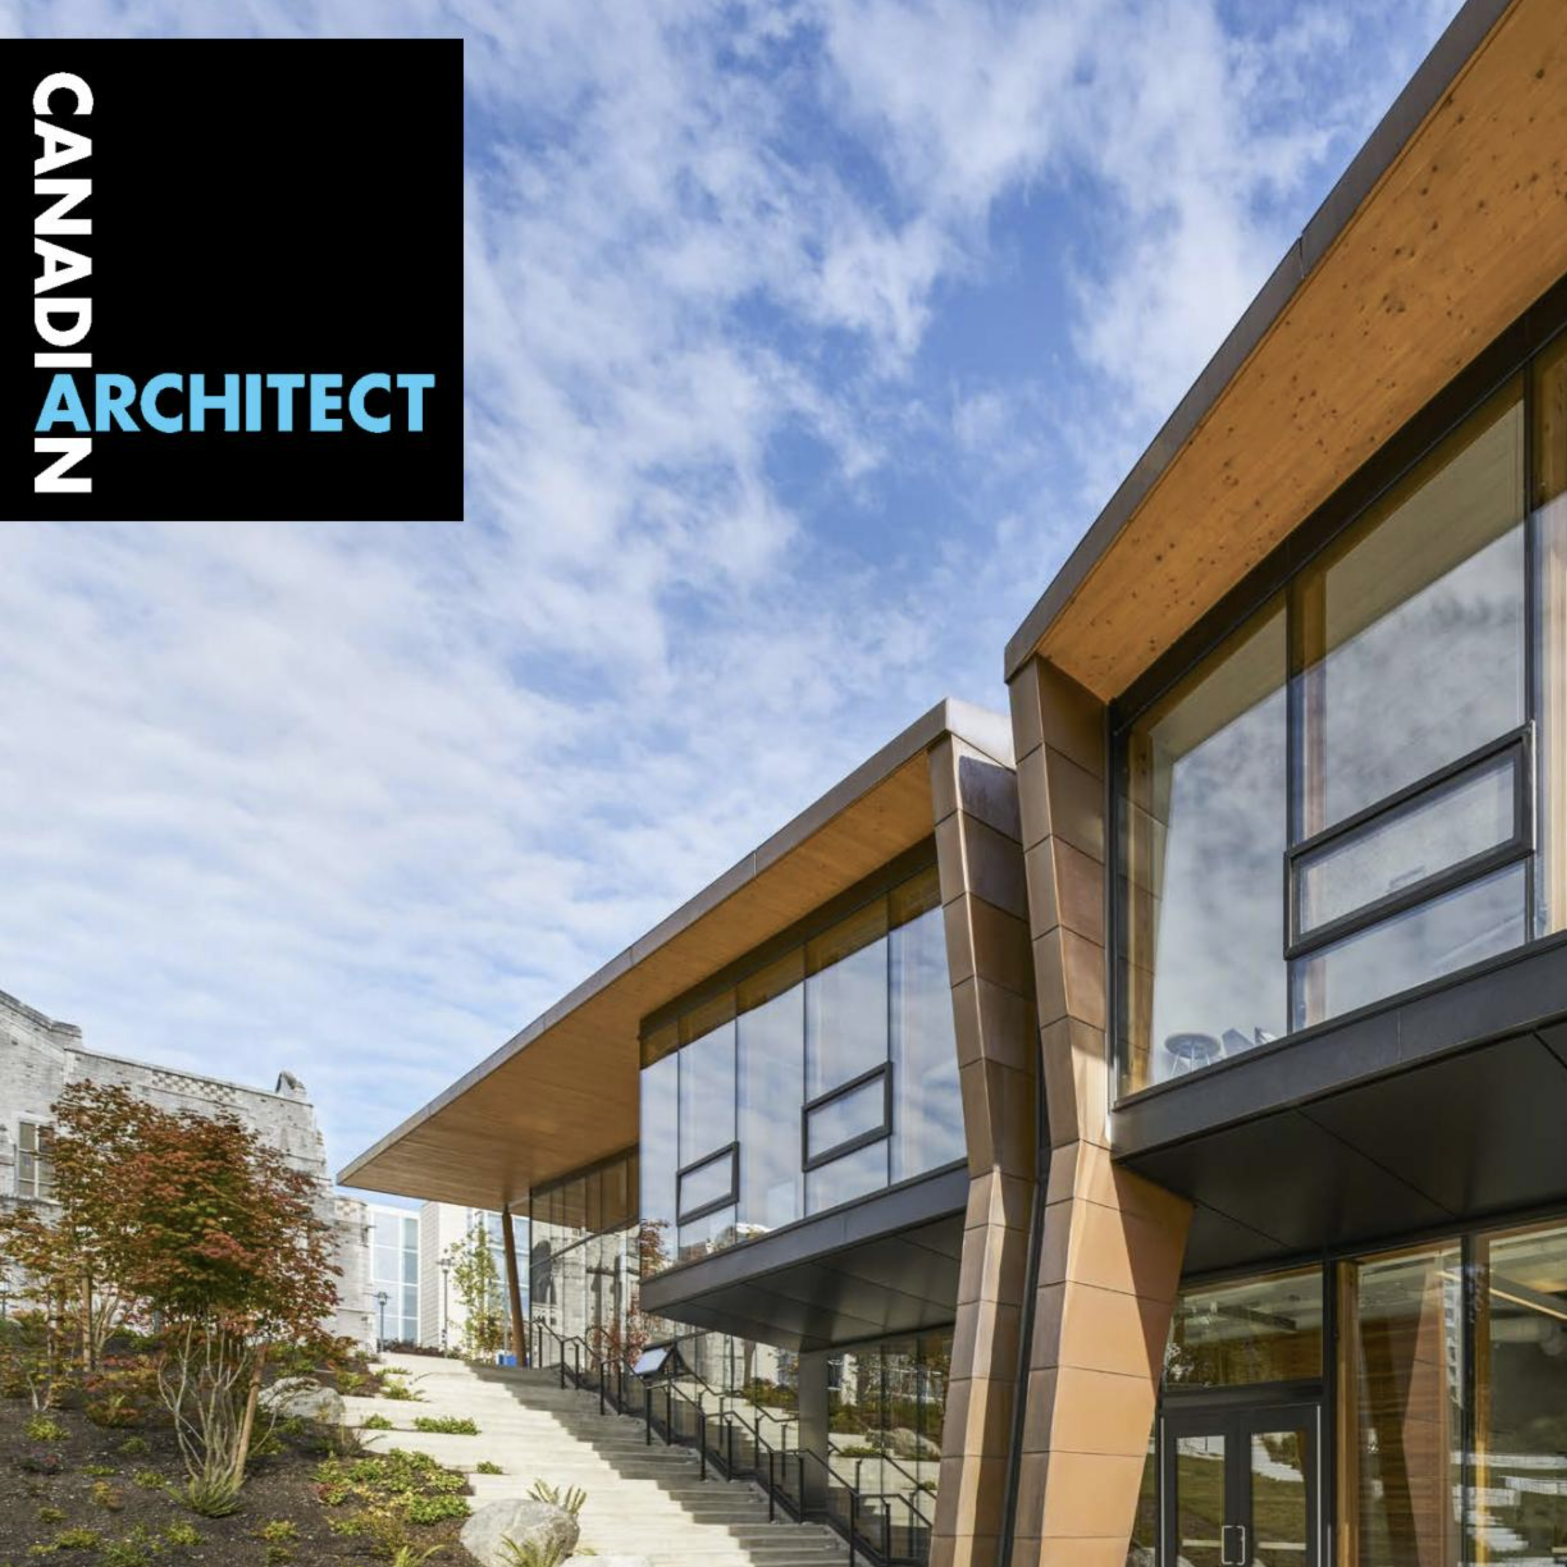 HANDSOME HYBRID - D'Arcy's building review of KPMB and Public: Architecture + Communications's new Wilson School of Design at Kwantlen College Richmond) is featured in the October 2018 issue of Canadian Architect.